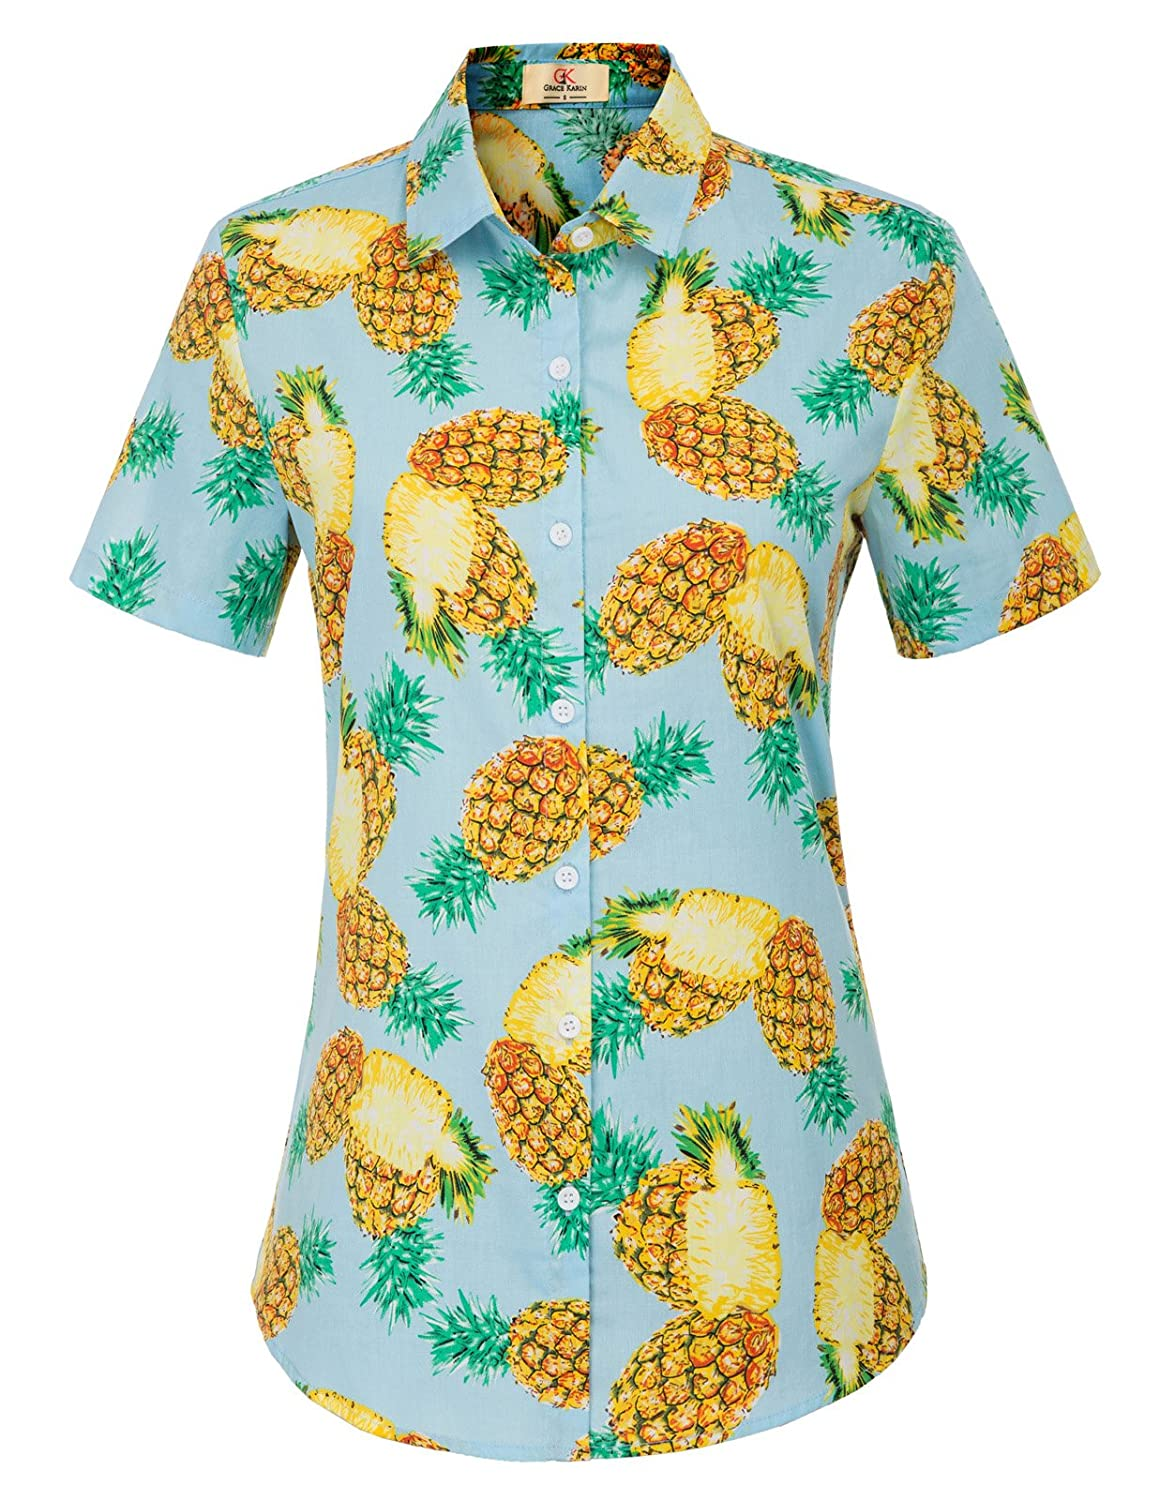 5568c67192 Top 10 wholesale Pineapple Button Down Shirt - Chinabrands.com